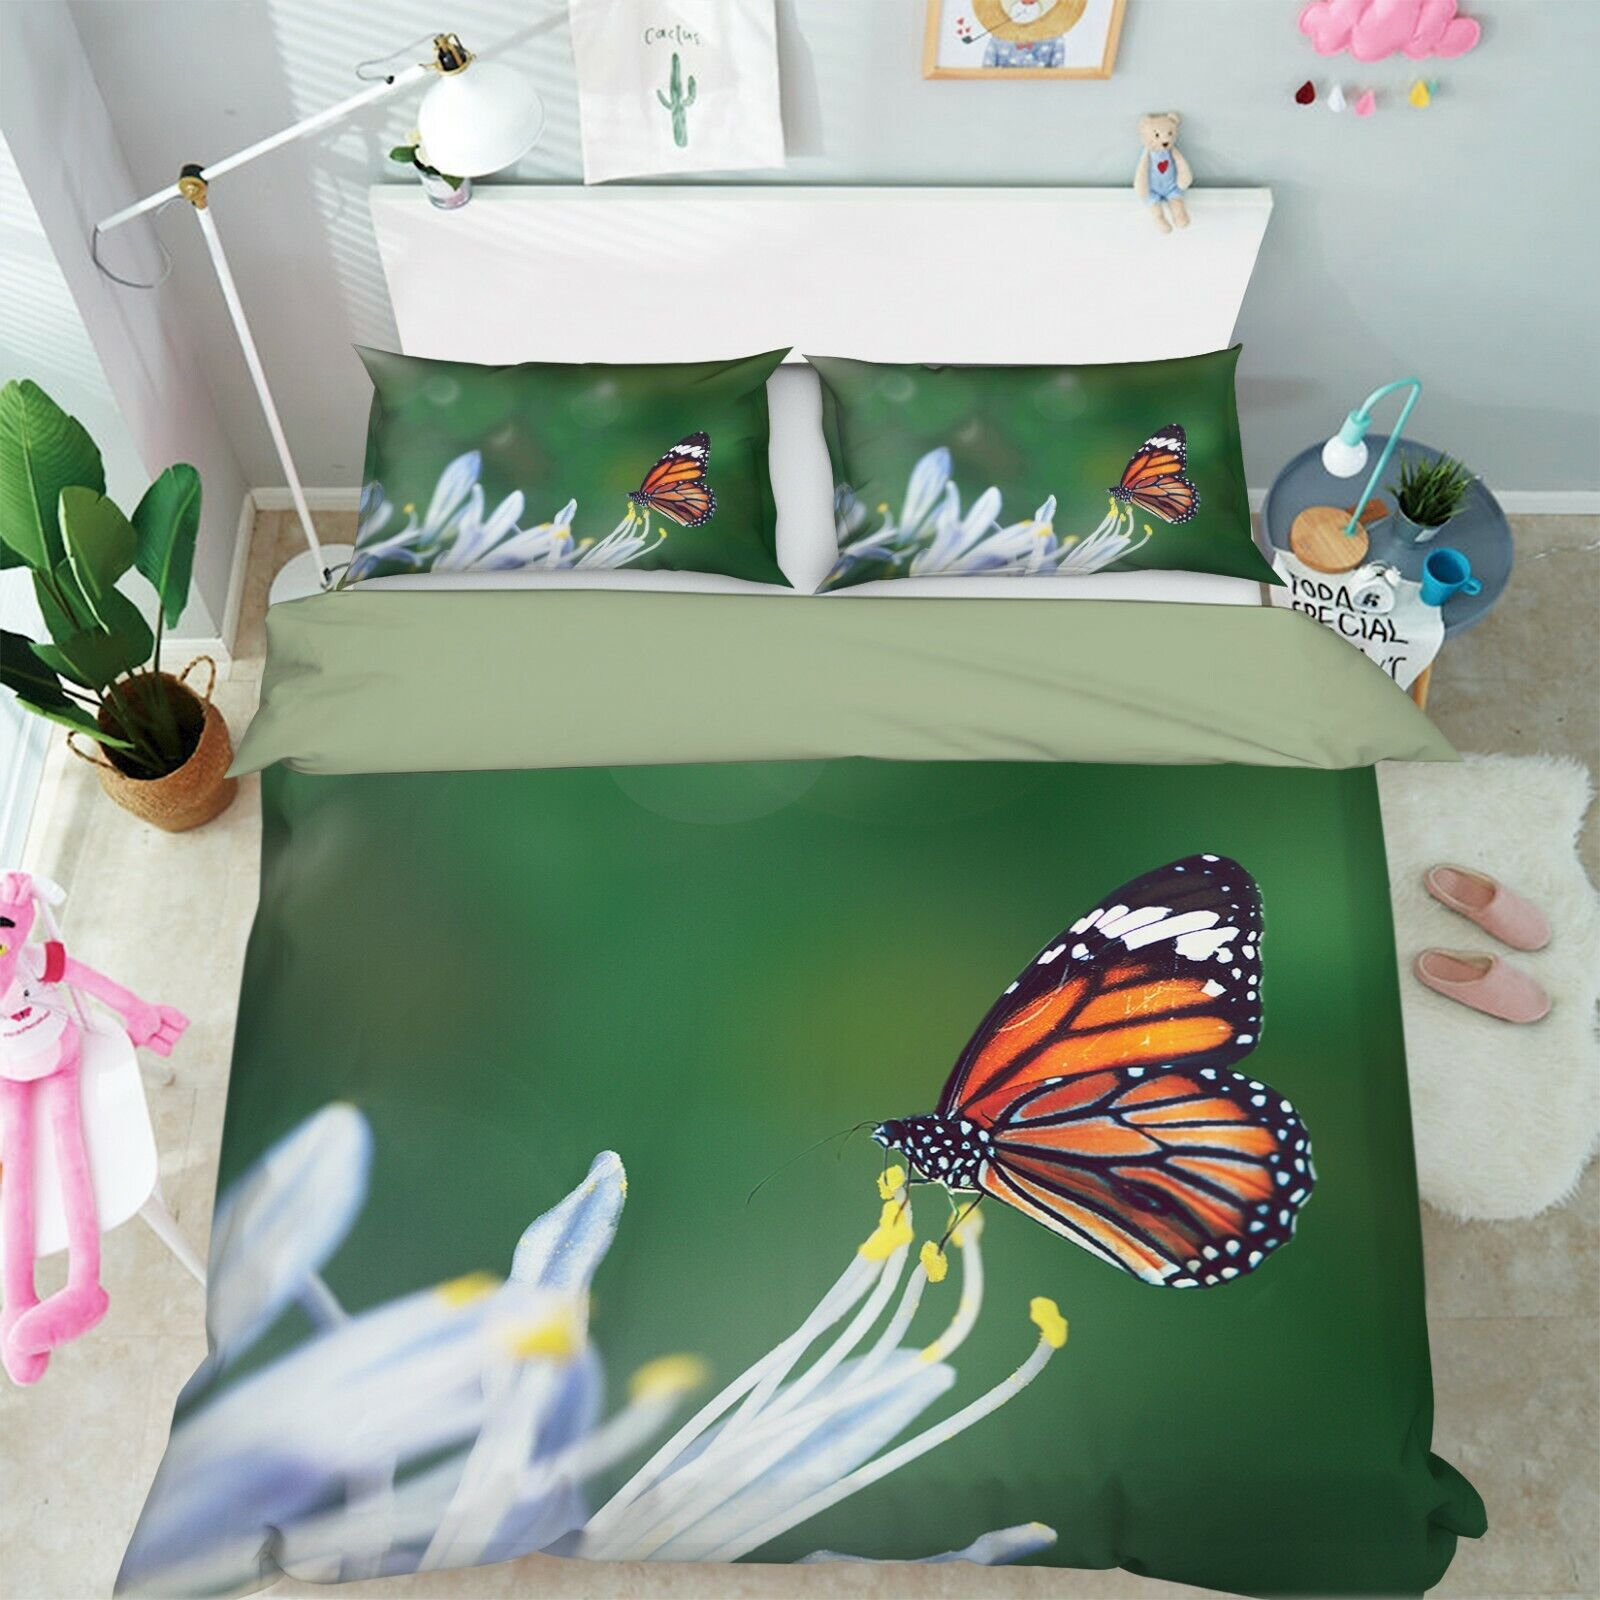 3D Daisy Butterfly R144 Animal Bed Pillowcases Quilt Duvet Cover Queen King Zoe